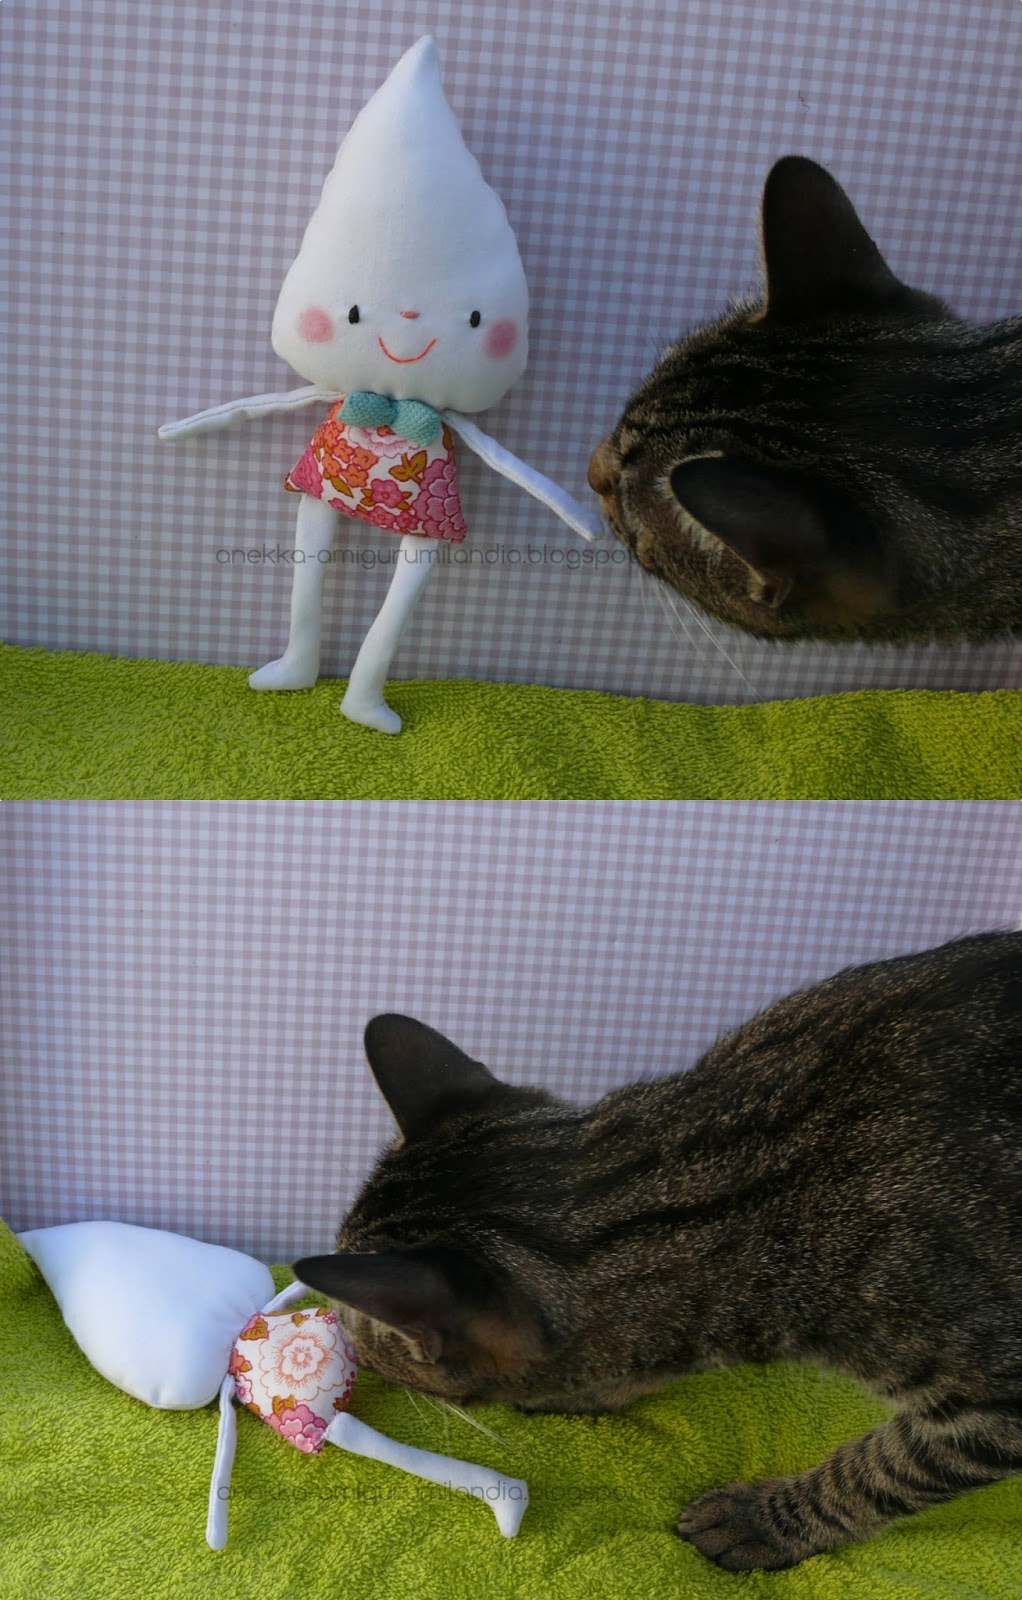 cat and  plush doll anekka handmade